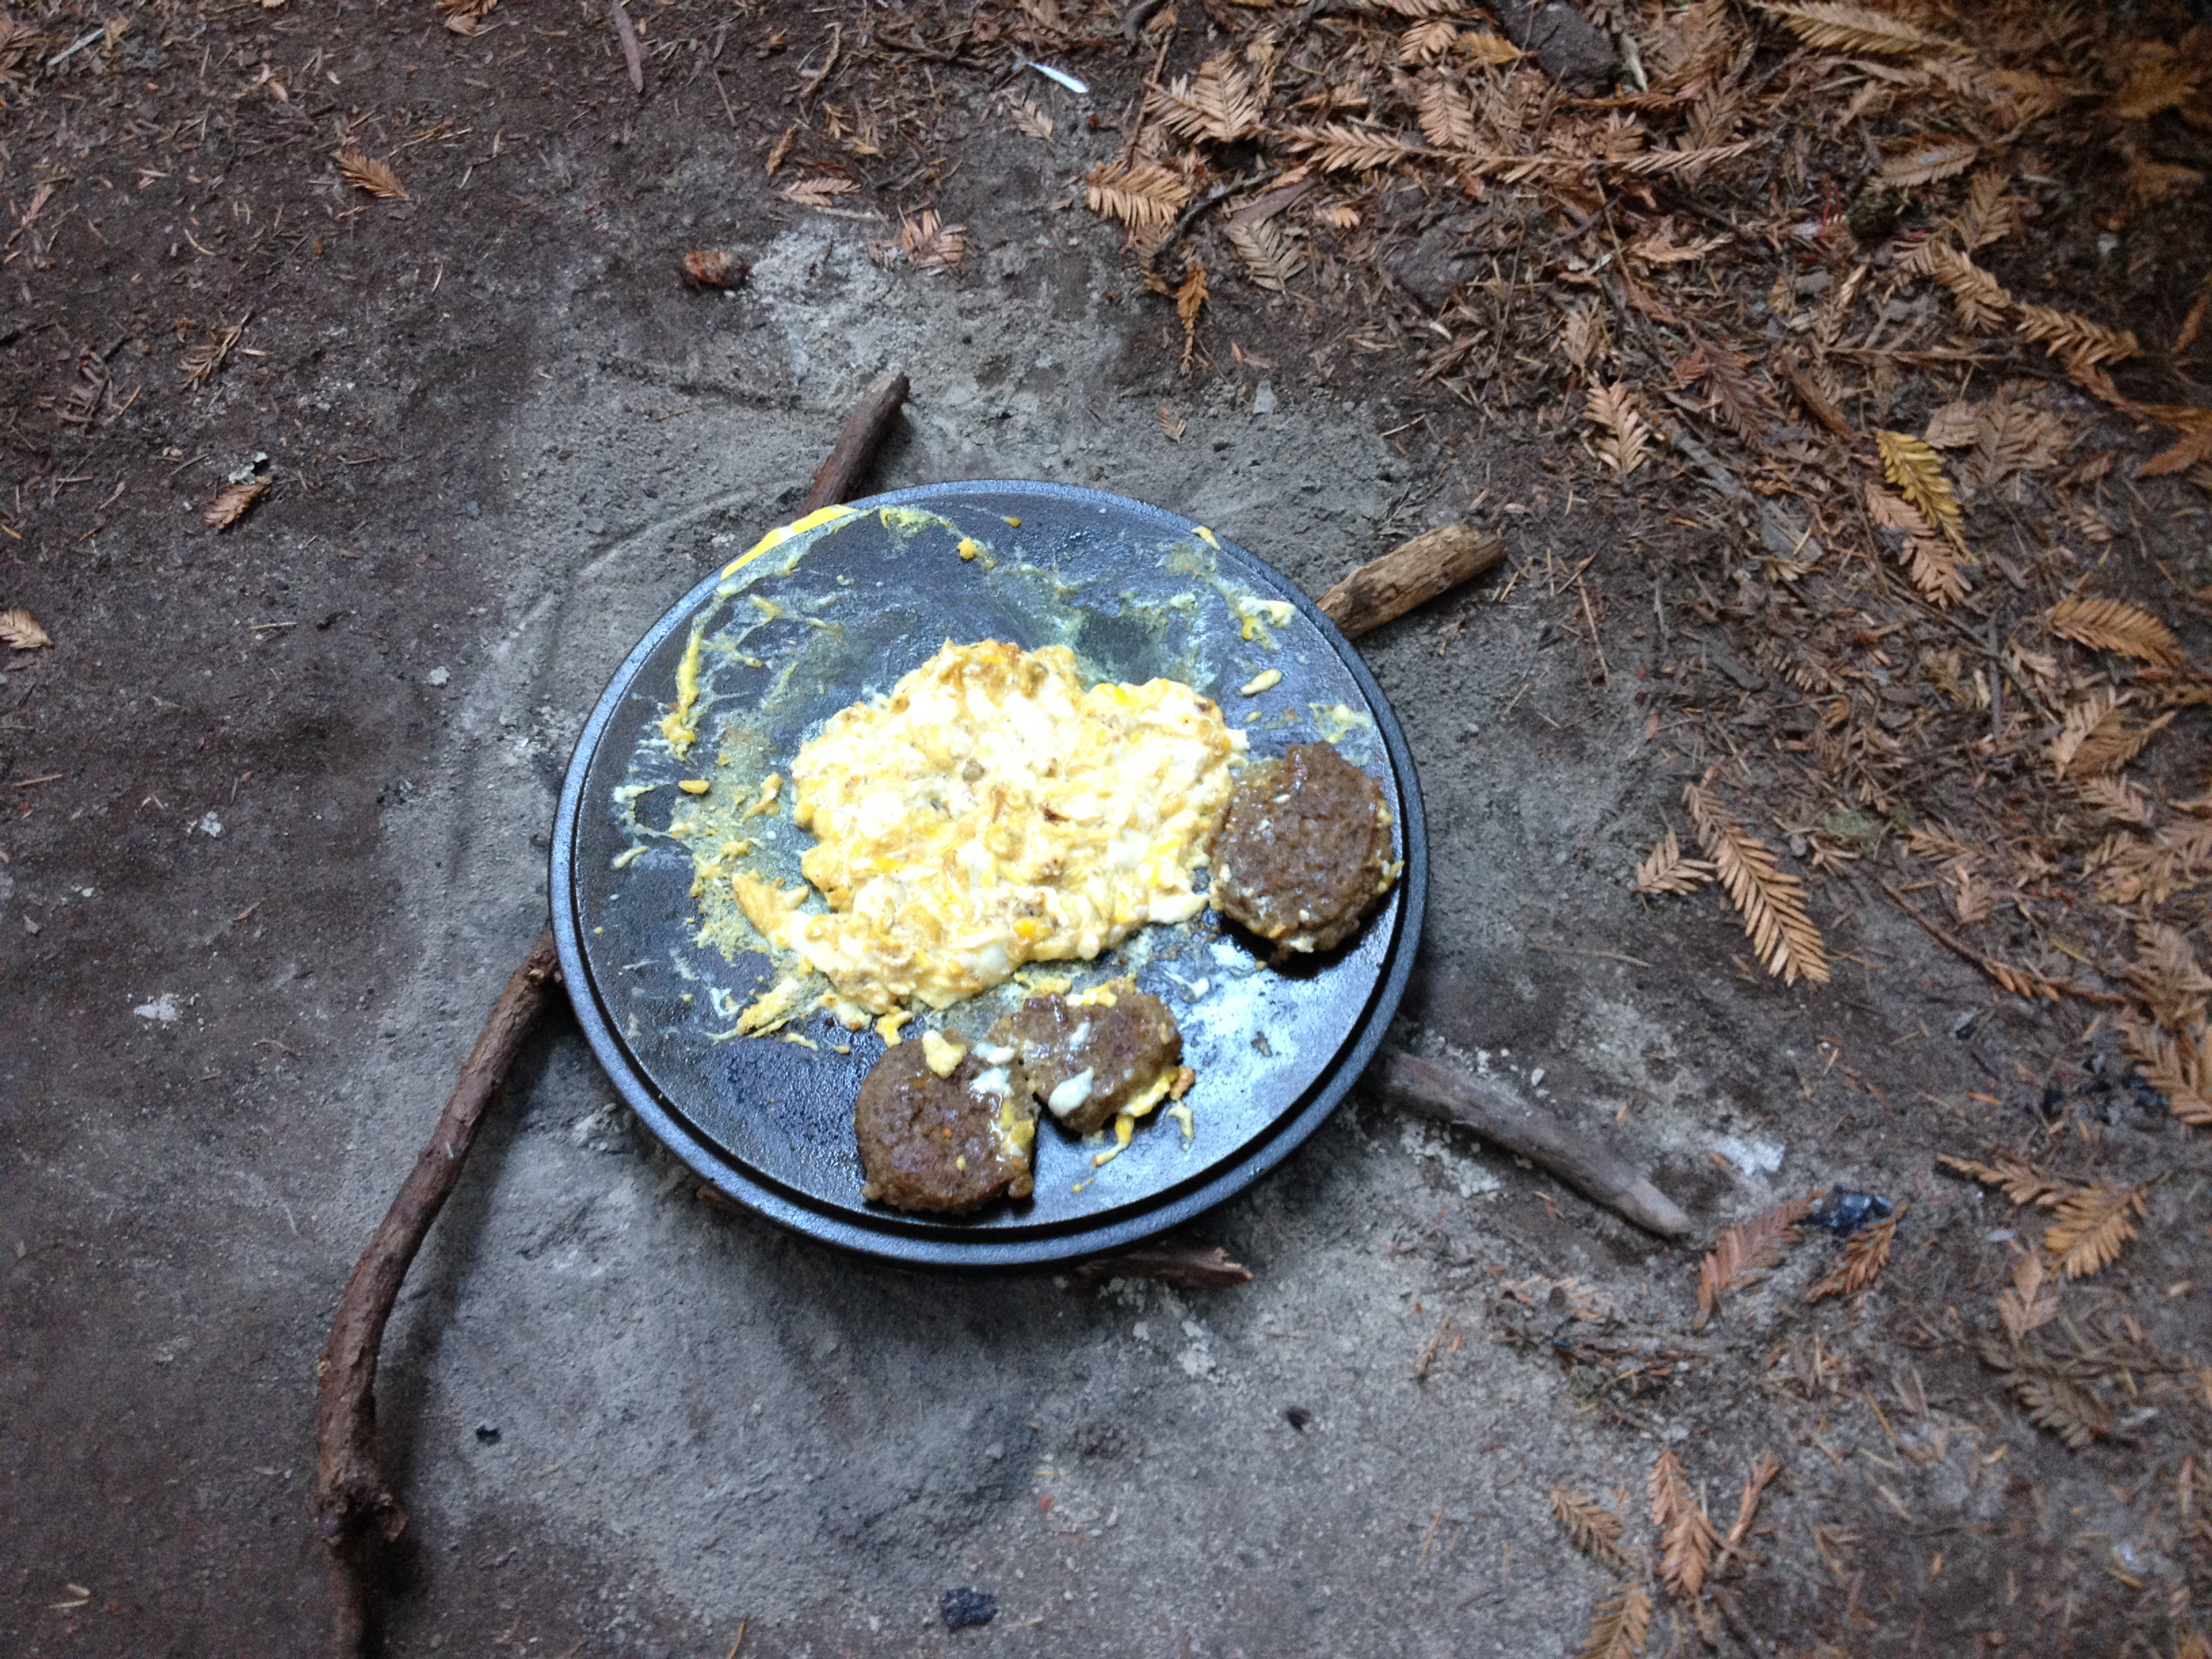 Cooking while camping. Dutch oven lid eggs and sausage.